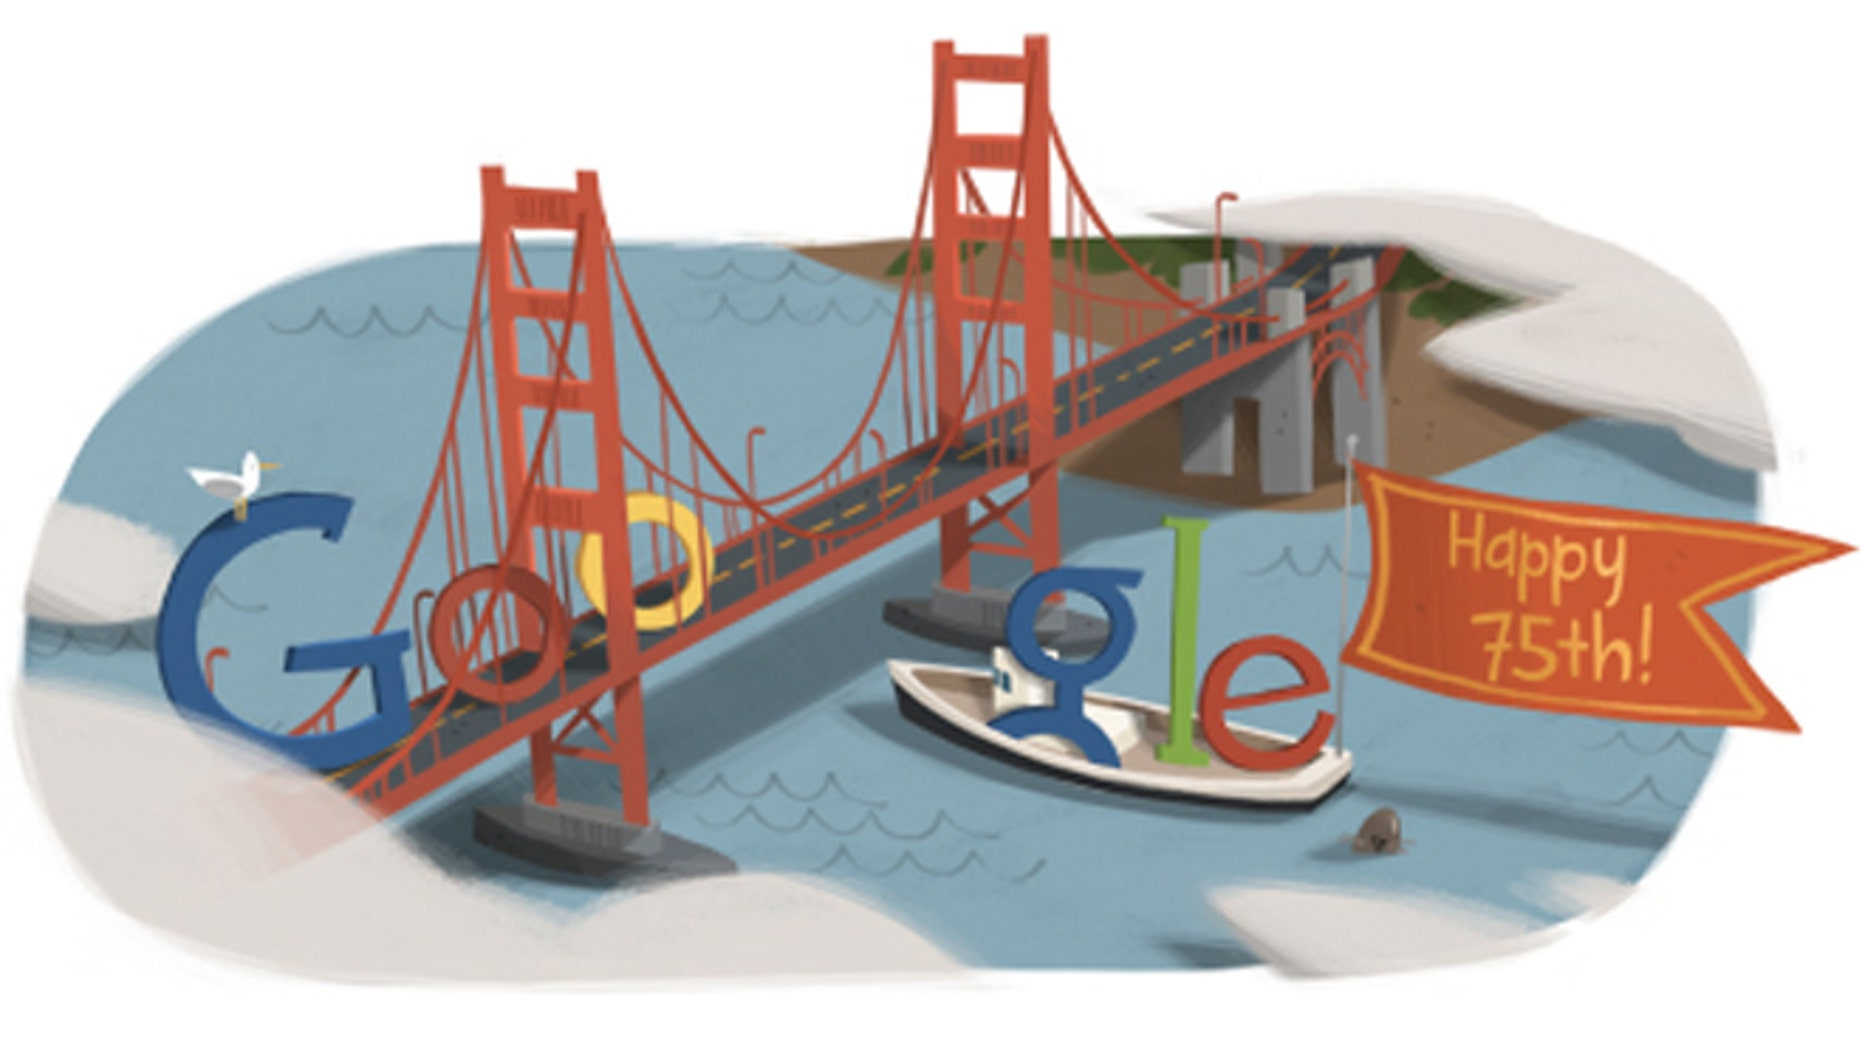 A 2012 Google Doodle celebrates the 75th anniversary of the Golden Gate Bridge.